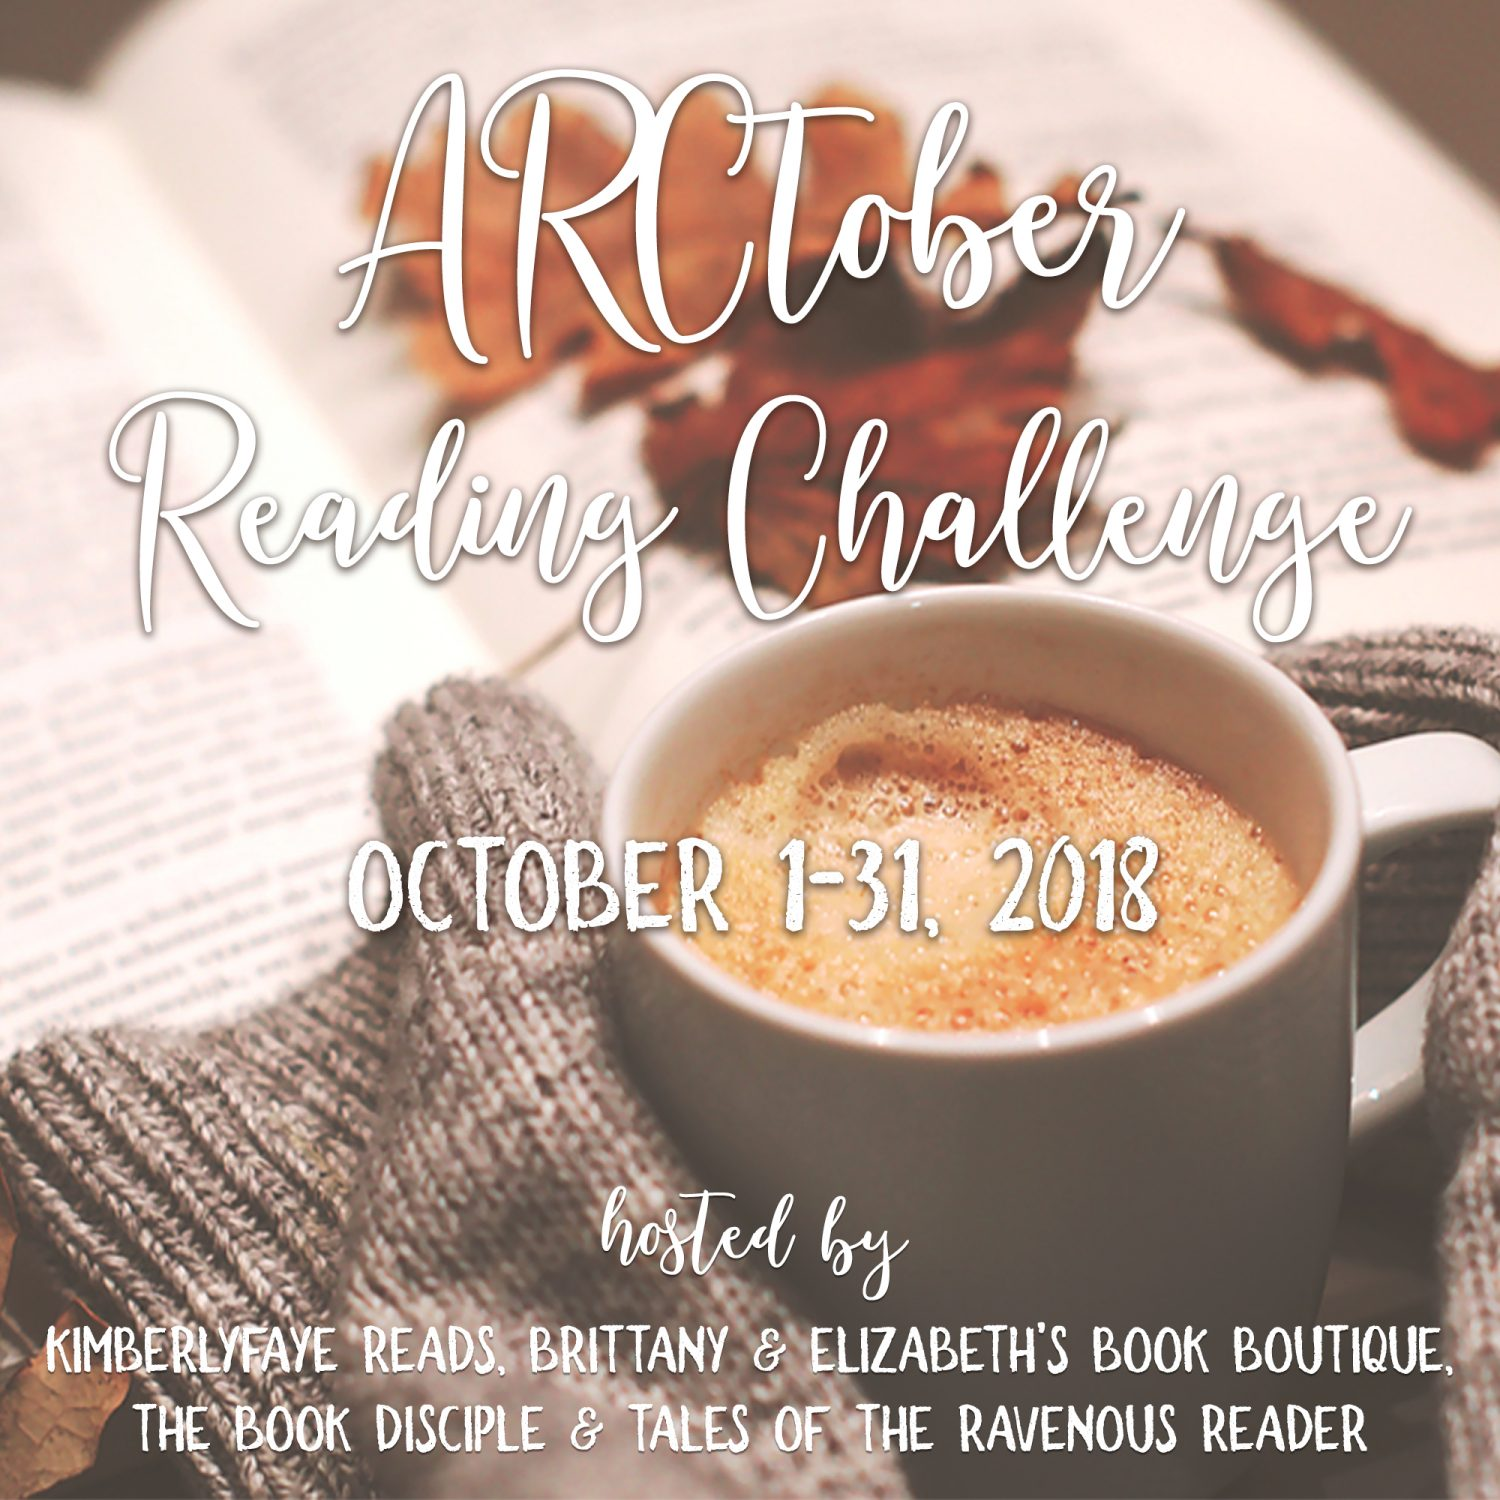 2018 ARCtober Reading Challenge: Goals and Books